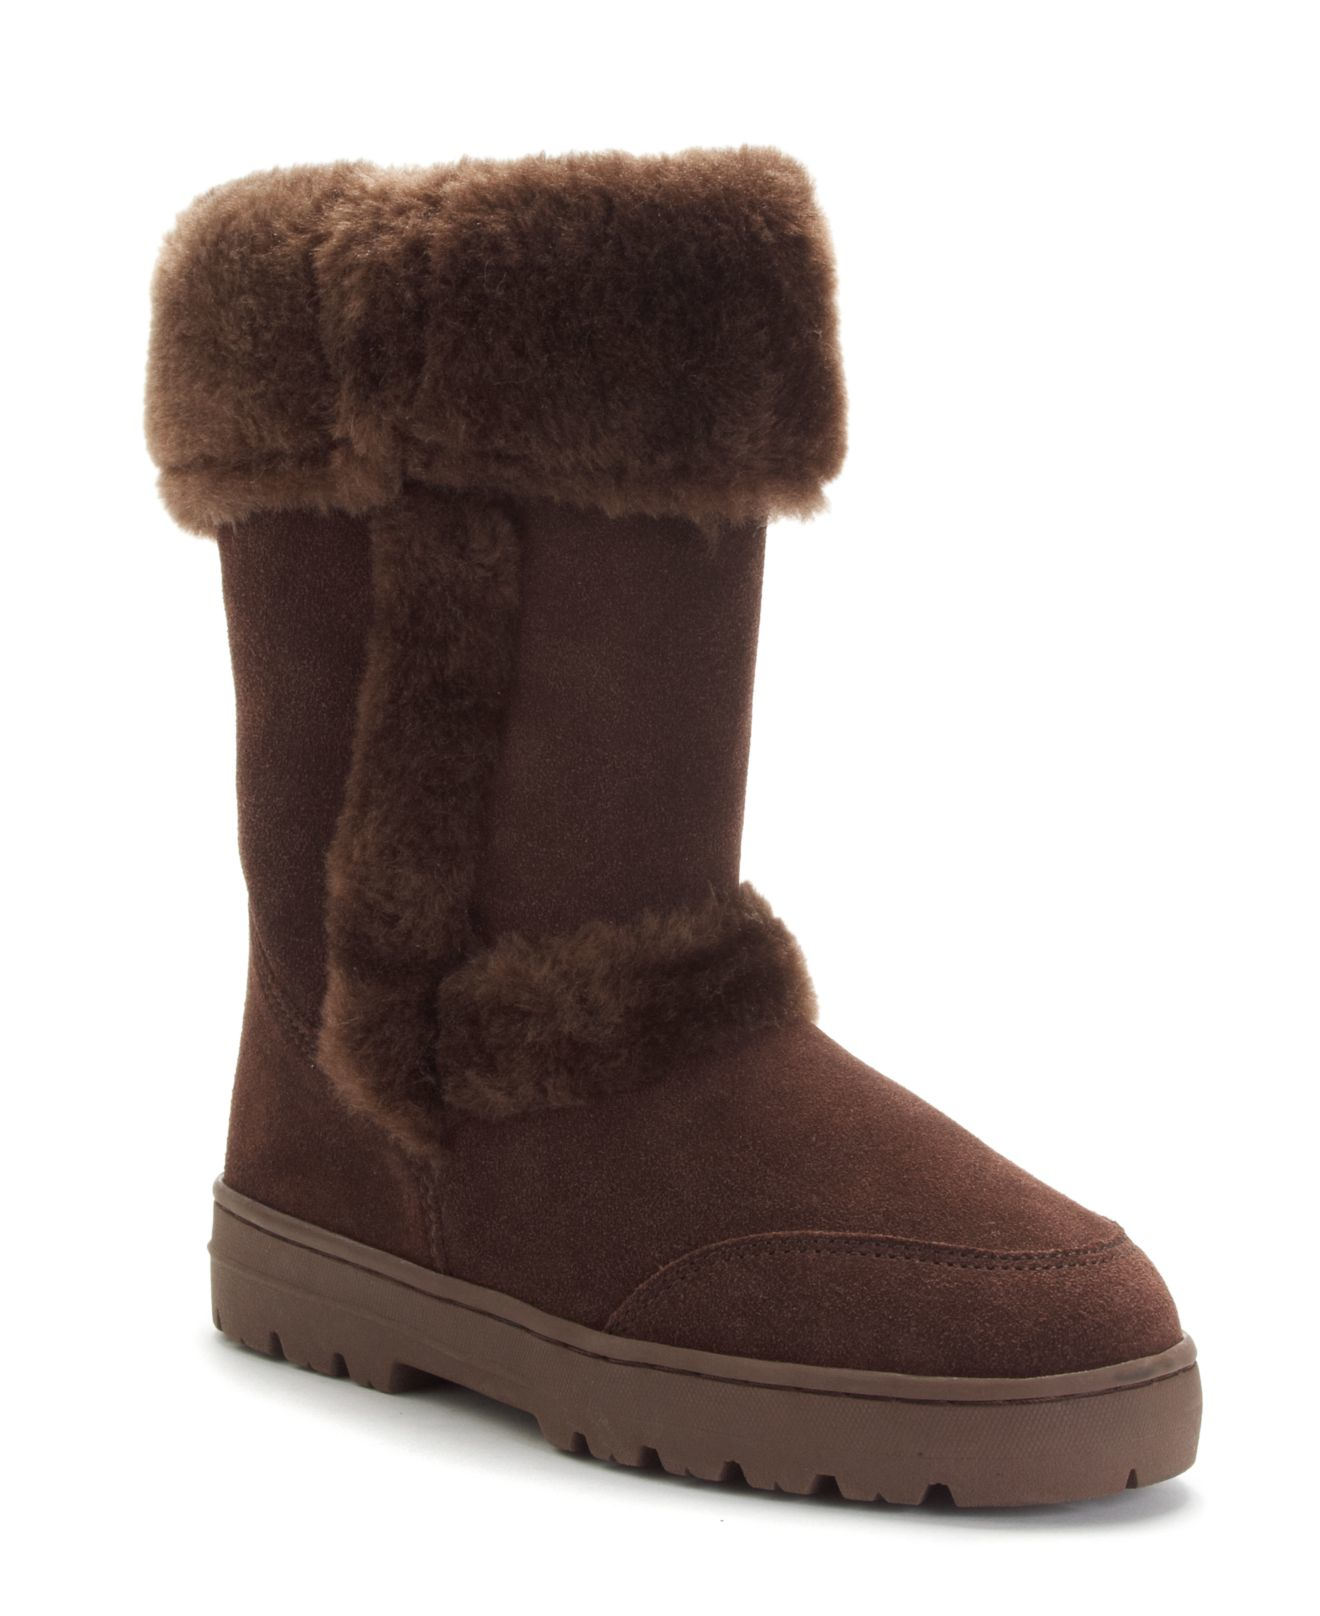 style co witty cold weather boots only at macy s in